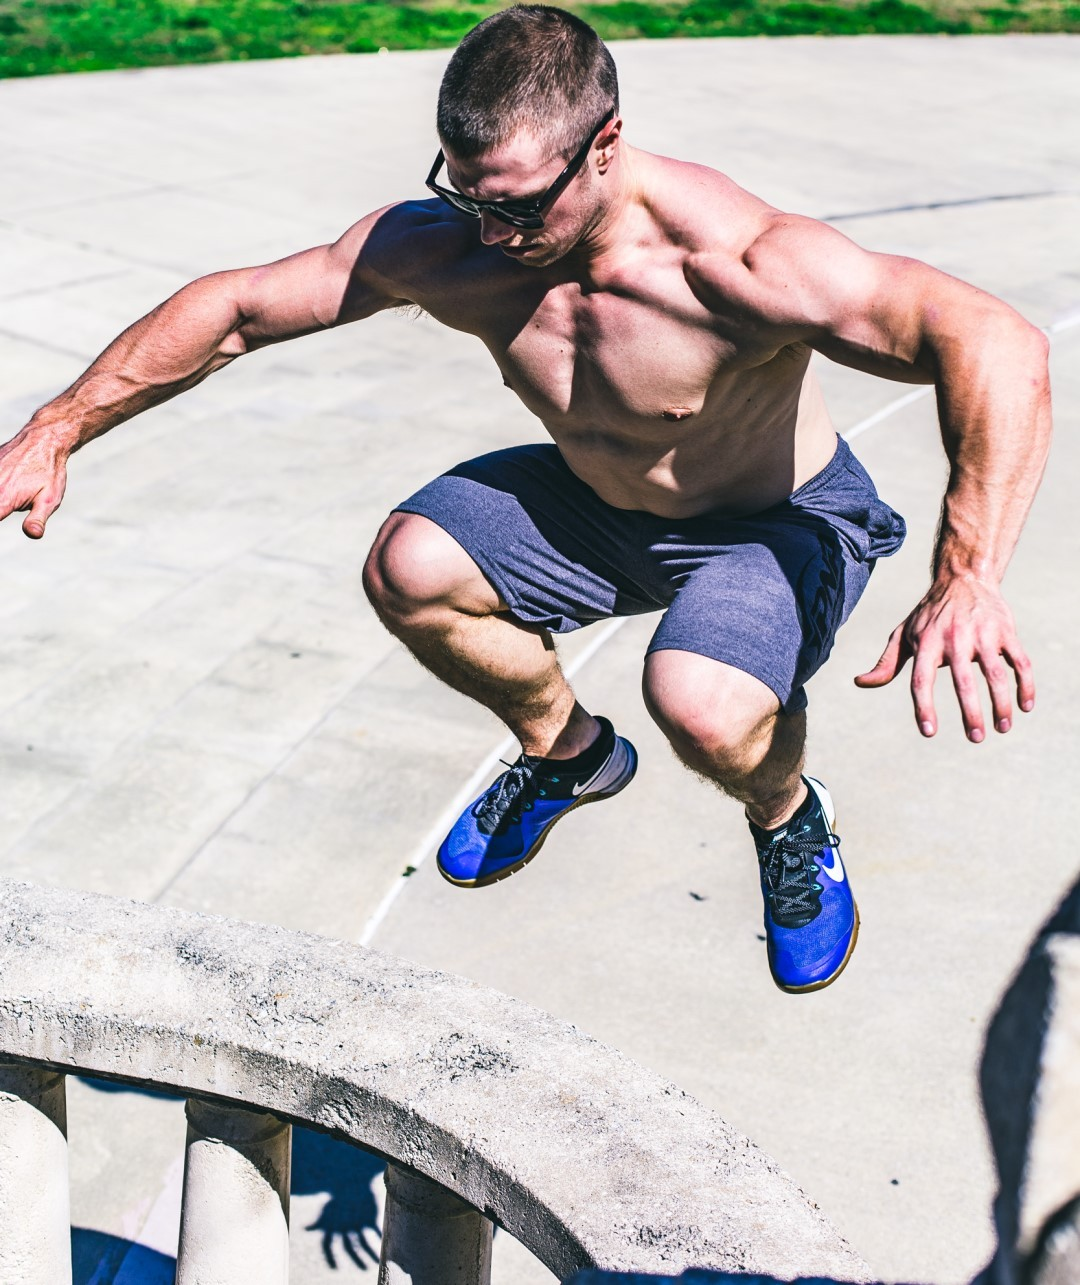 An athlete building explosive strength power with Plyometric and Ballistic training.